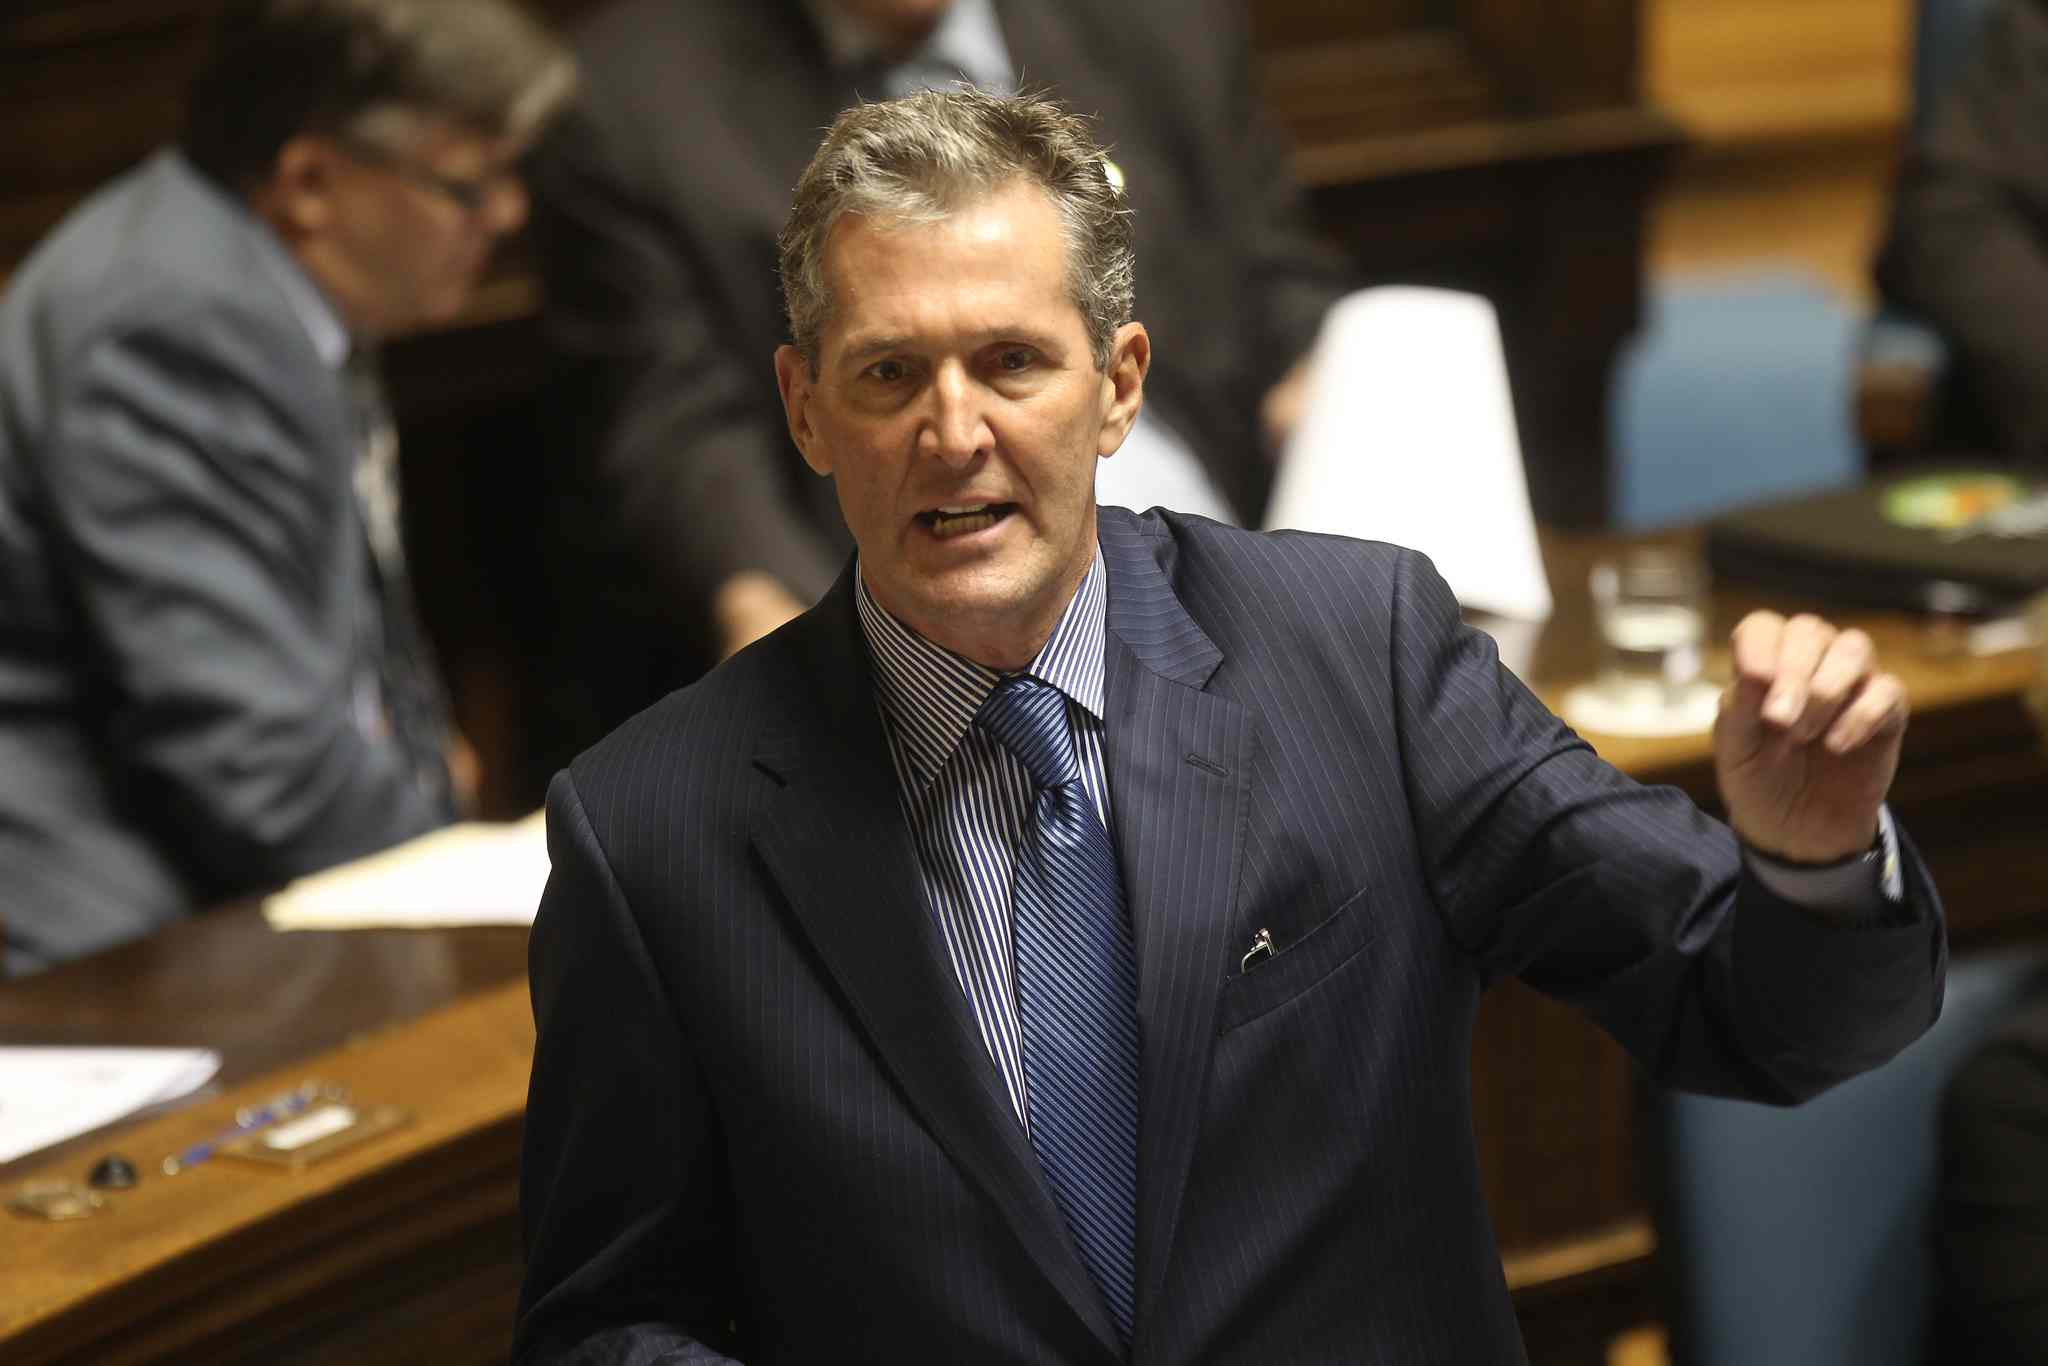 'I think that team building is essential and partnerships are essential, but you don't have to look any further than the dissent within the NDP government to have a powerful sense of disquiet about the ability of this government to work as a team themselves,' Conservative Leader Brian Pallister said today.